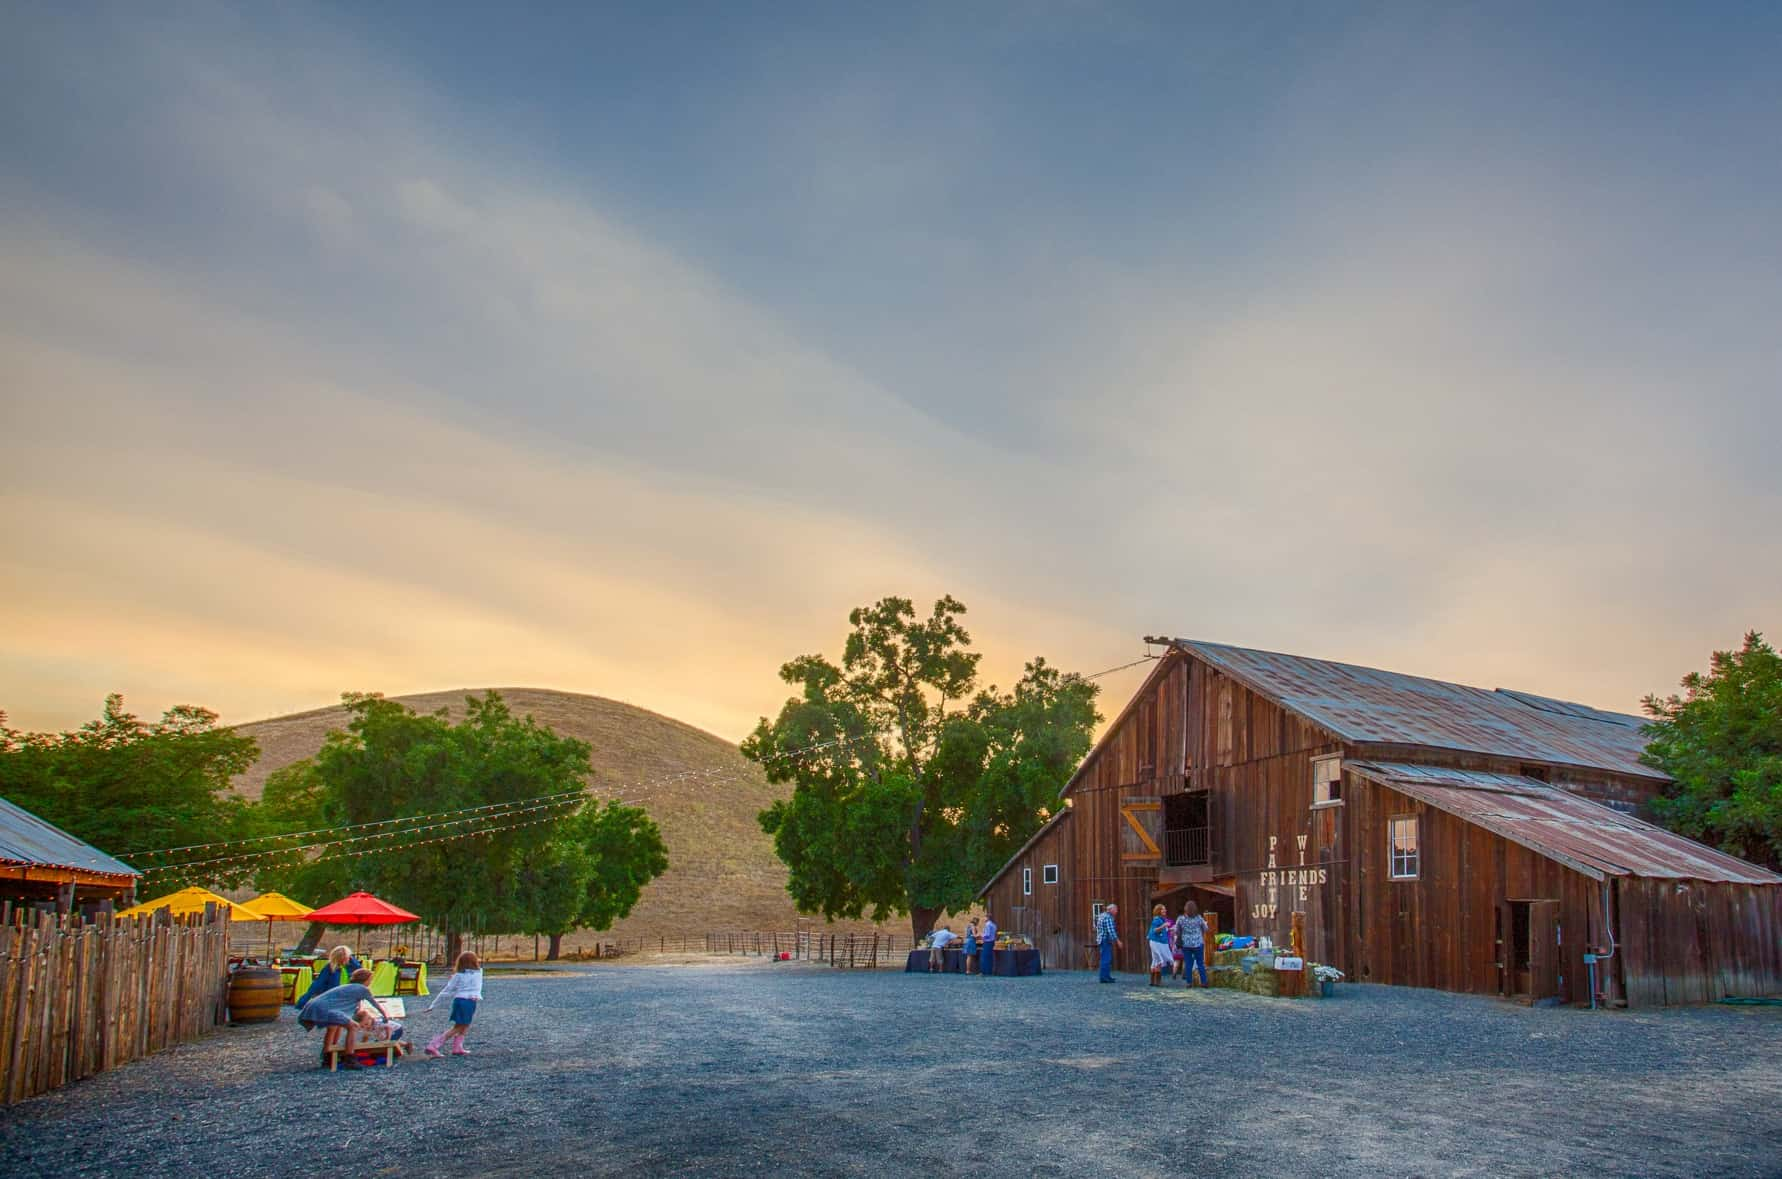 Unusual event location: rustic barn